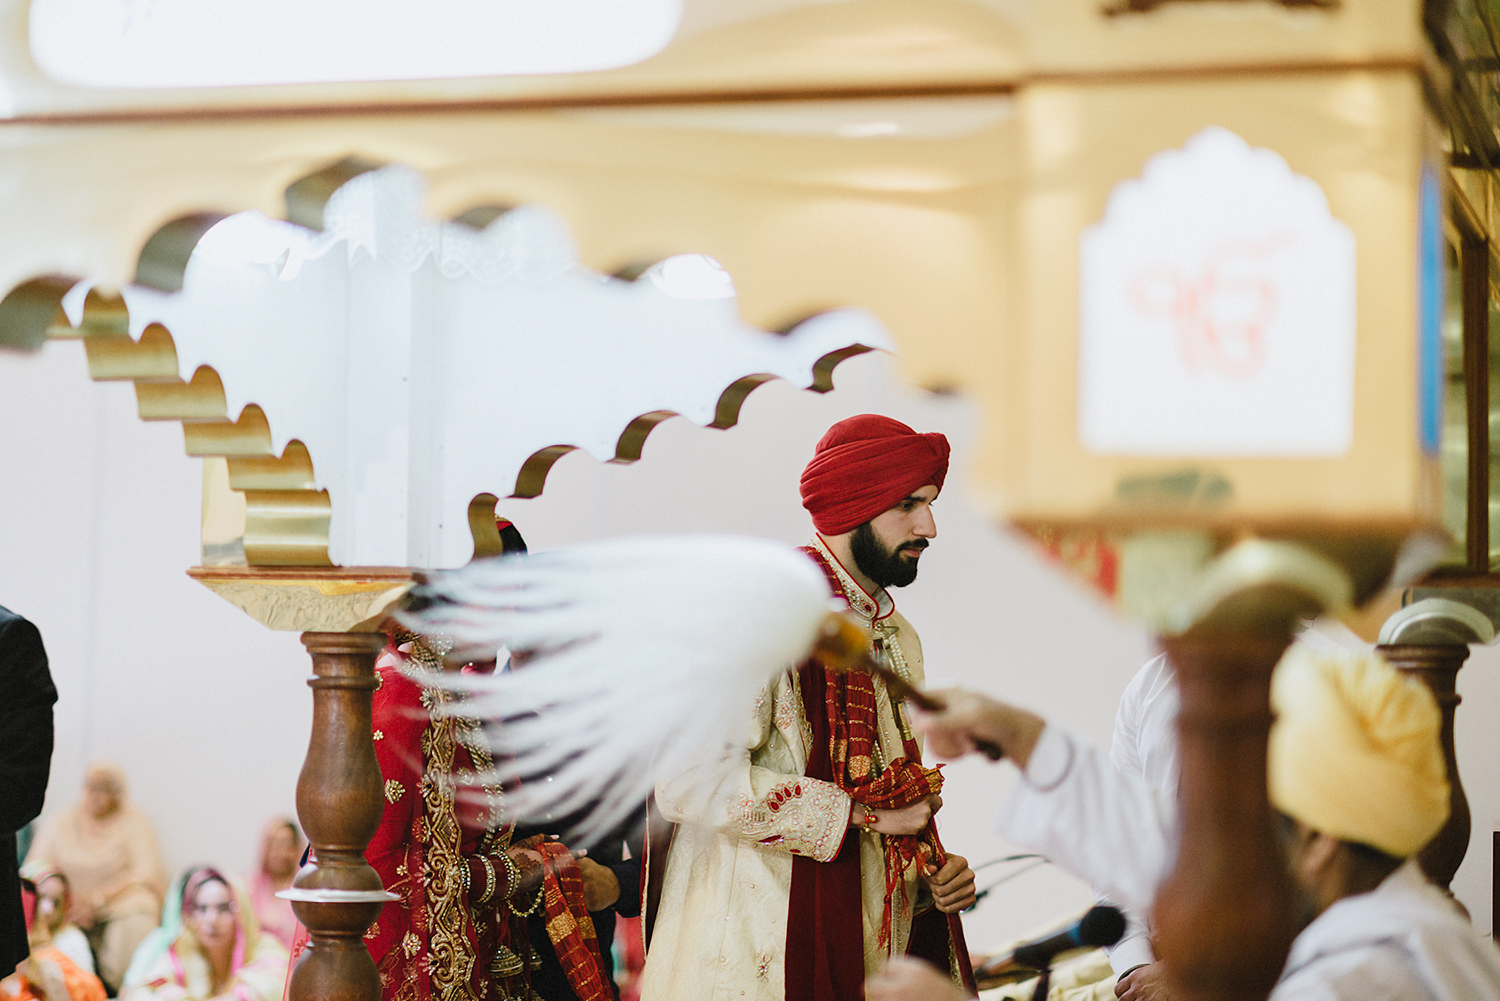 Toronto-Photojournalism-wedding-photographers-3B-Photography-Candid-Documentary-Film-Photography-Analog-Ontario-Hamilton-Port-Perry-Venue-temple-ceremony-sikh-tradition-bride-and-groom-marriage.jpg